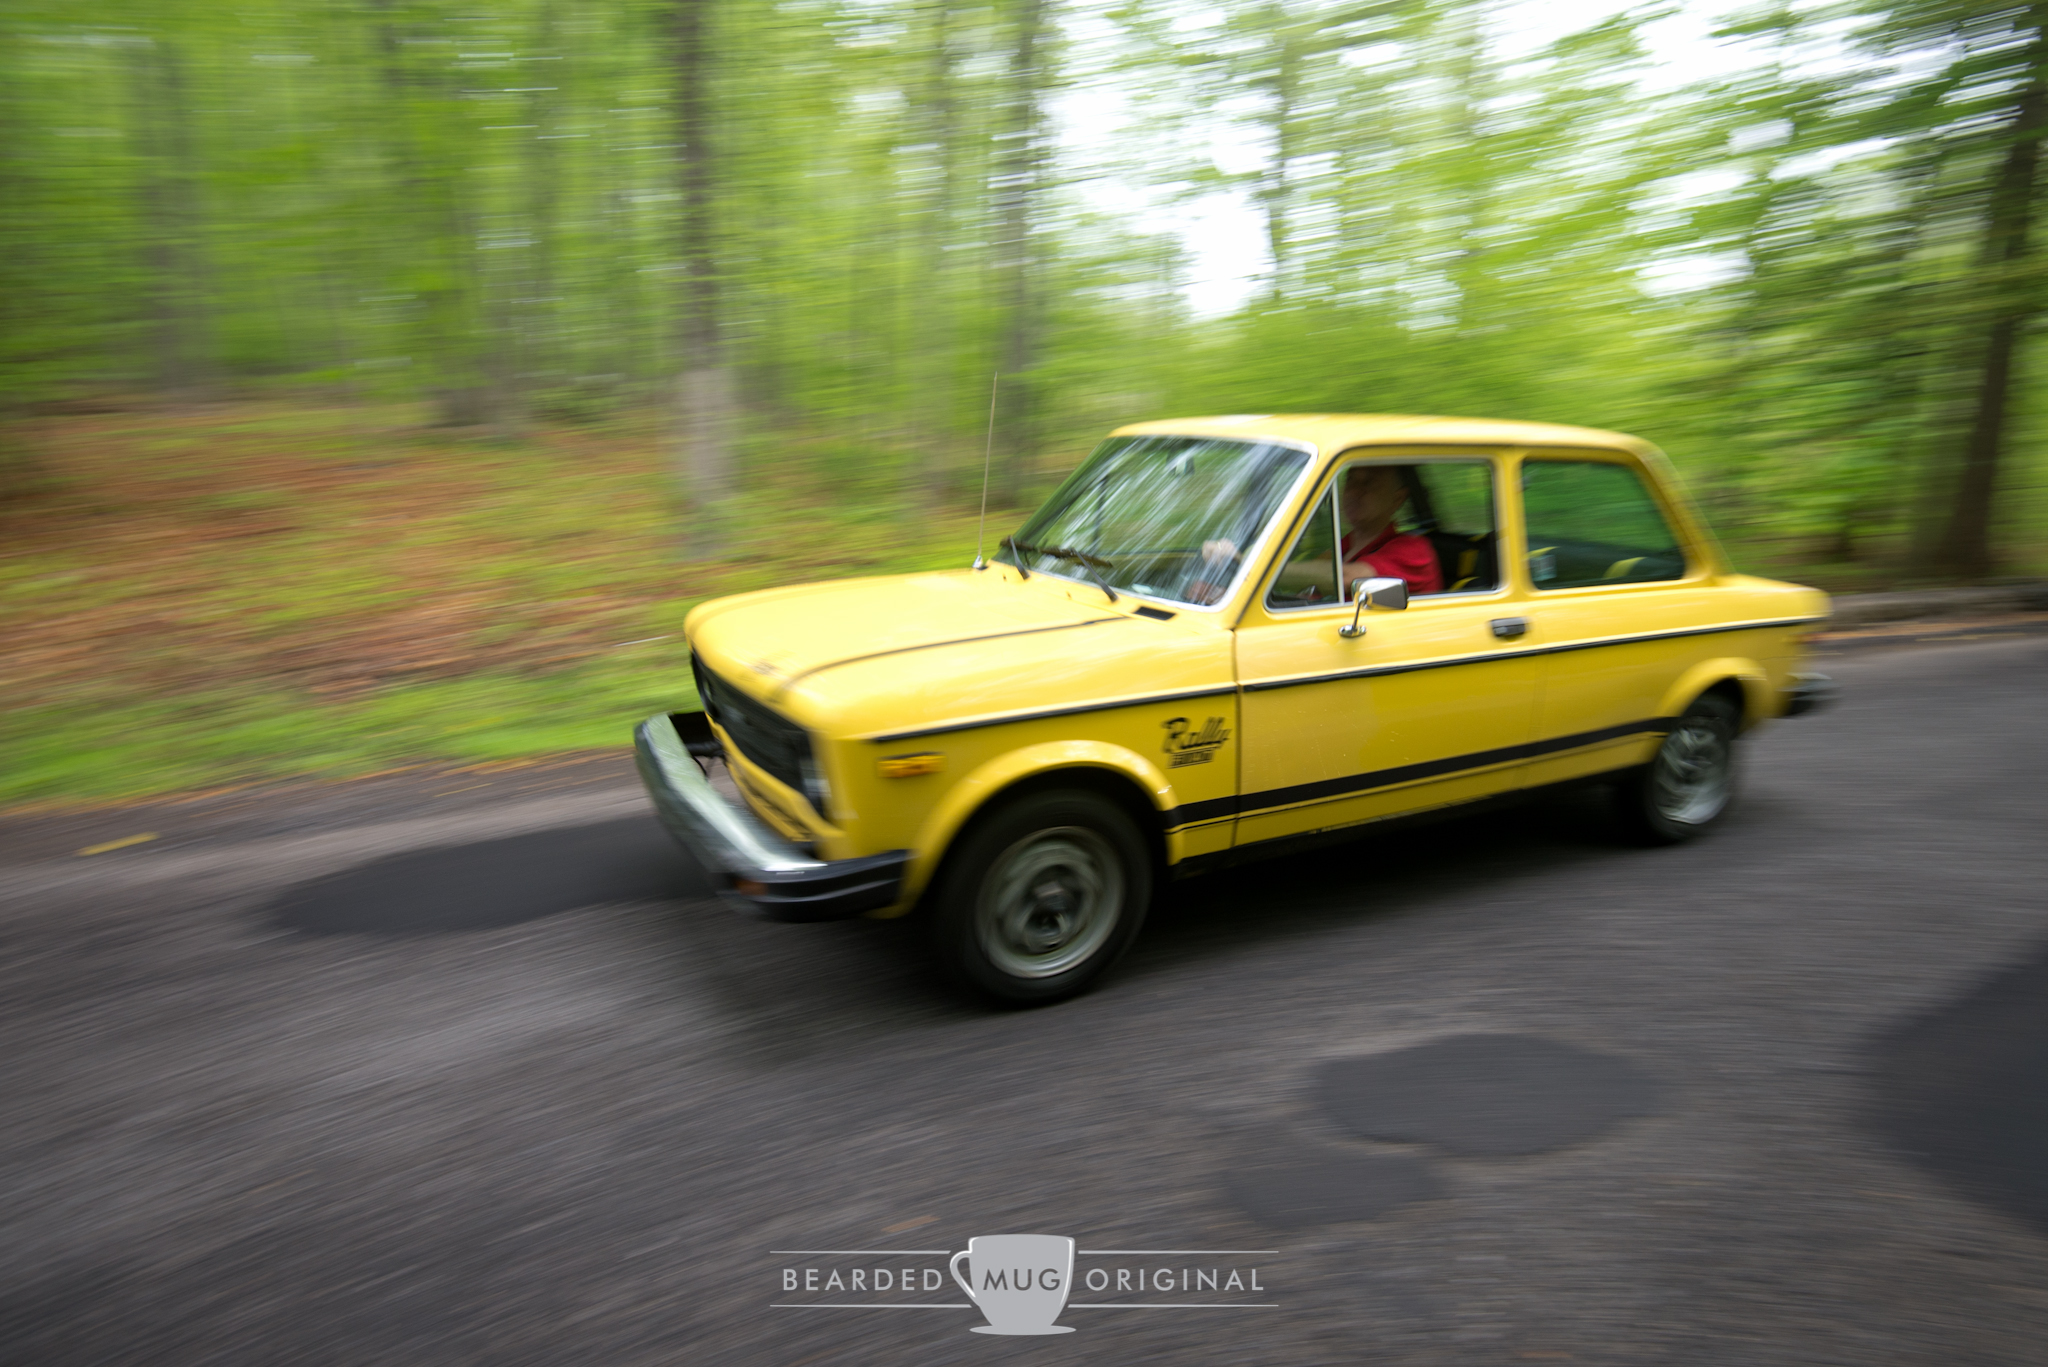 1977 Fiat 128 Rally Homologation built specifically for the US market buzzed right on by.